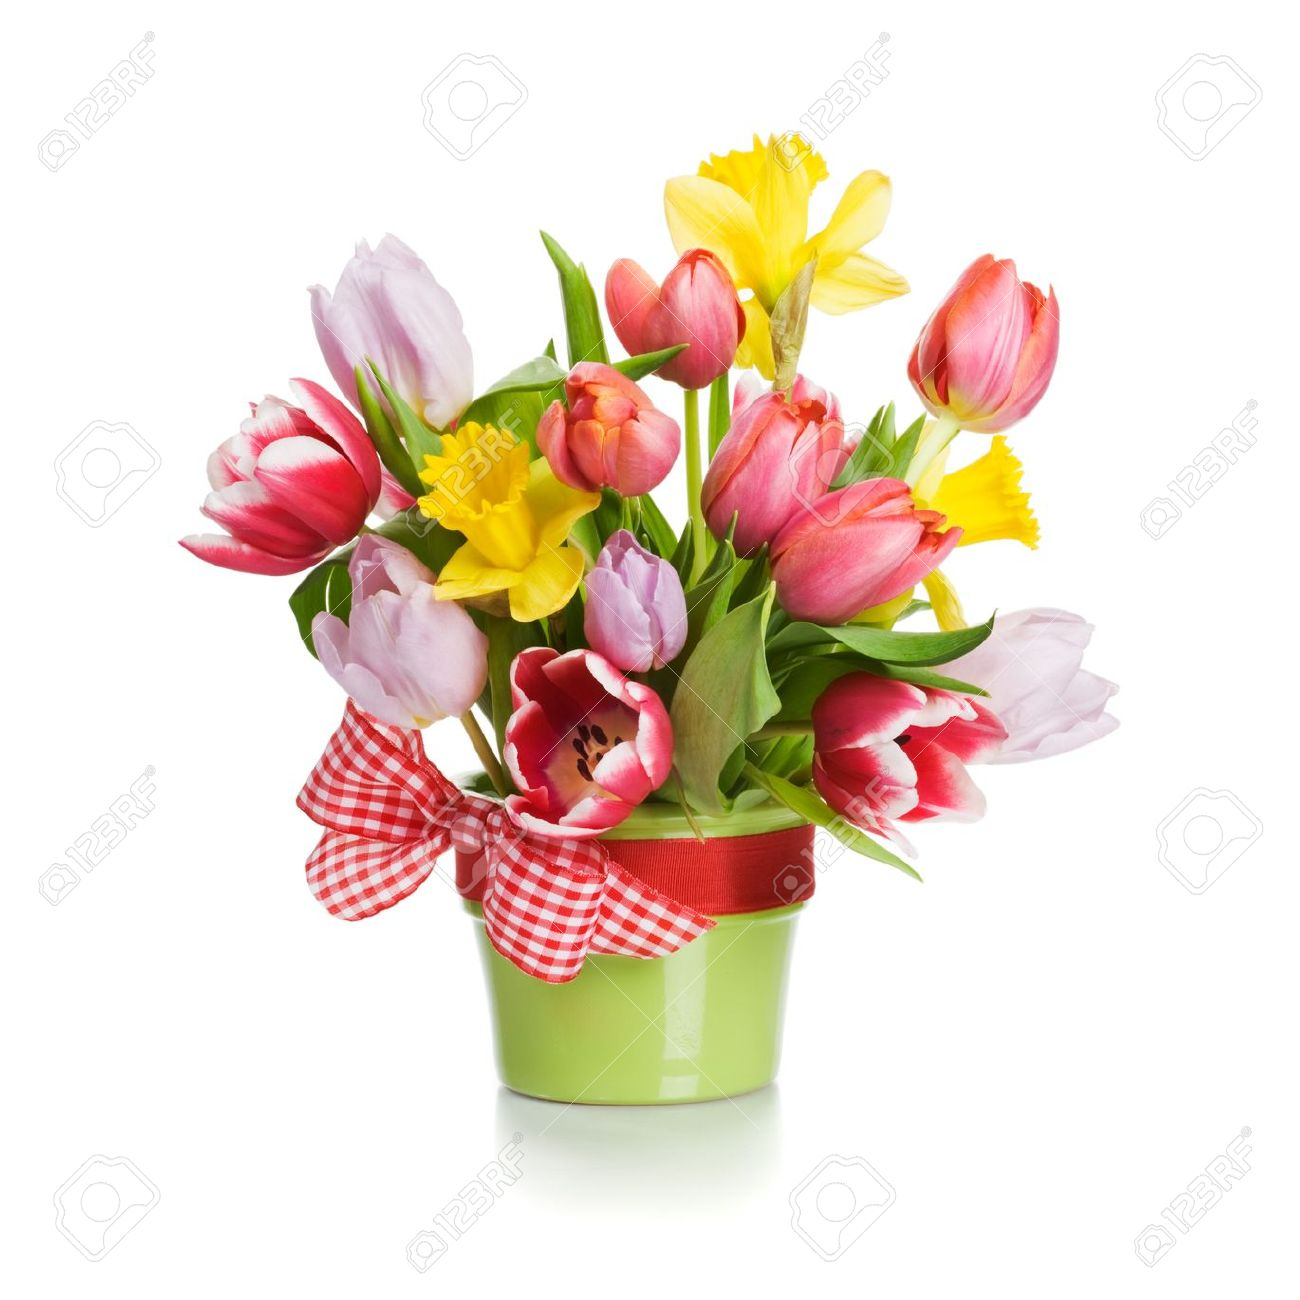 225 & Green flower pot with spring flowers on white background